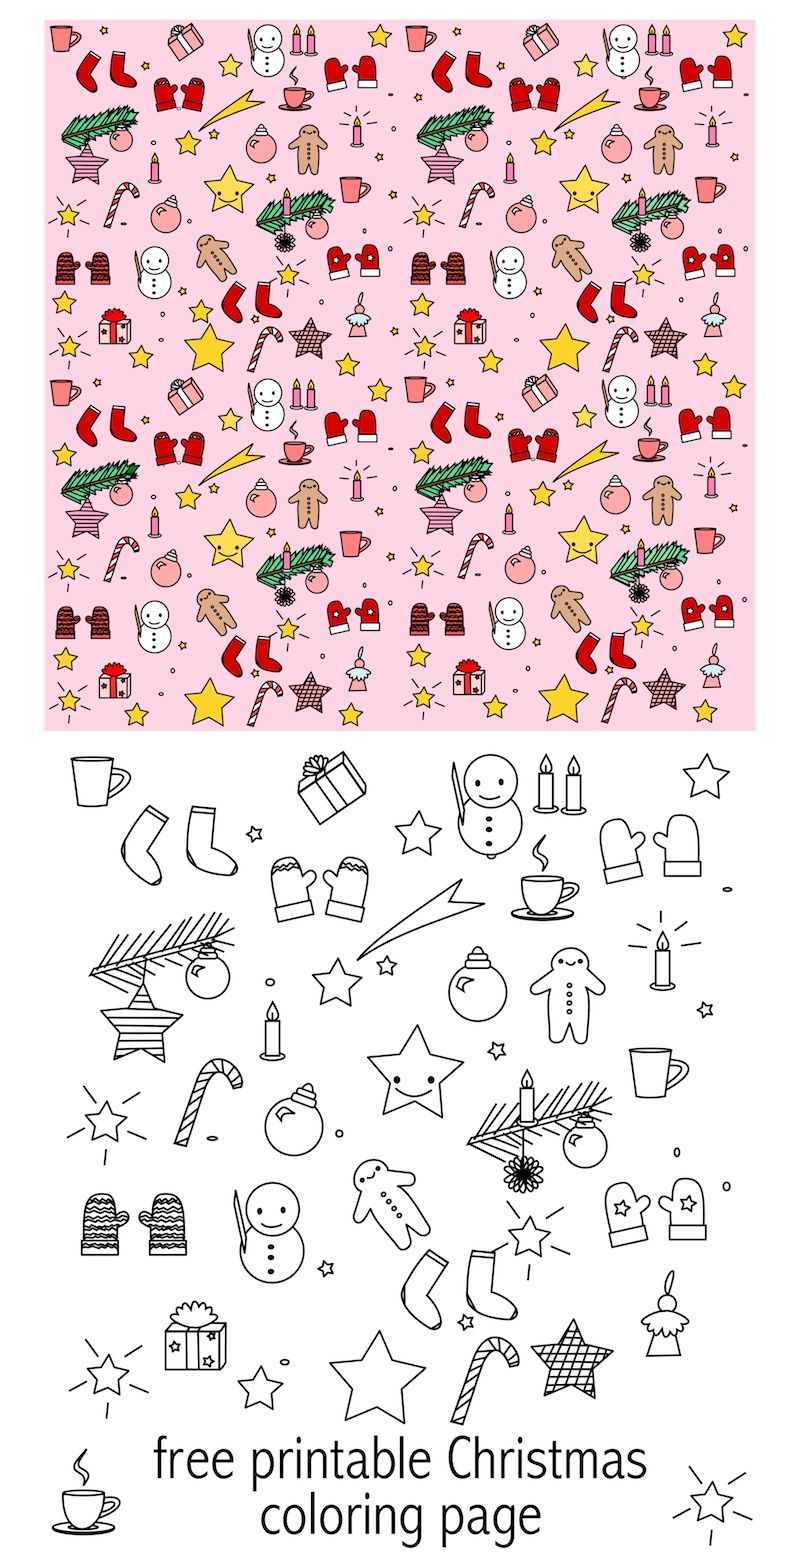 free printable christmas coloring page colored kawaii paper